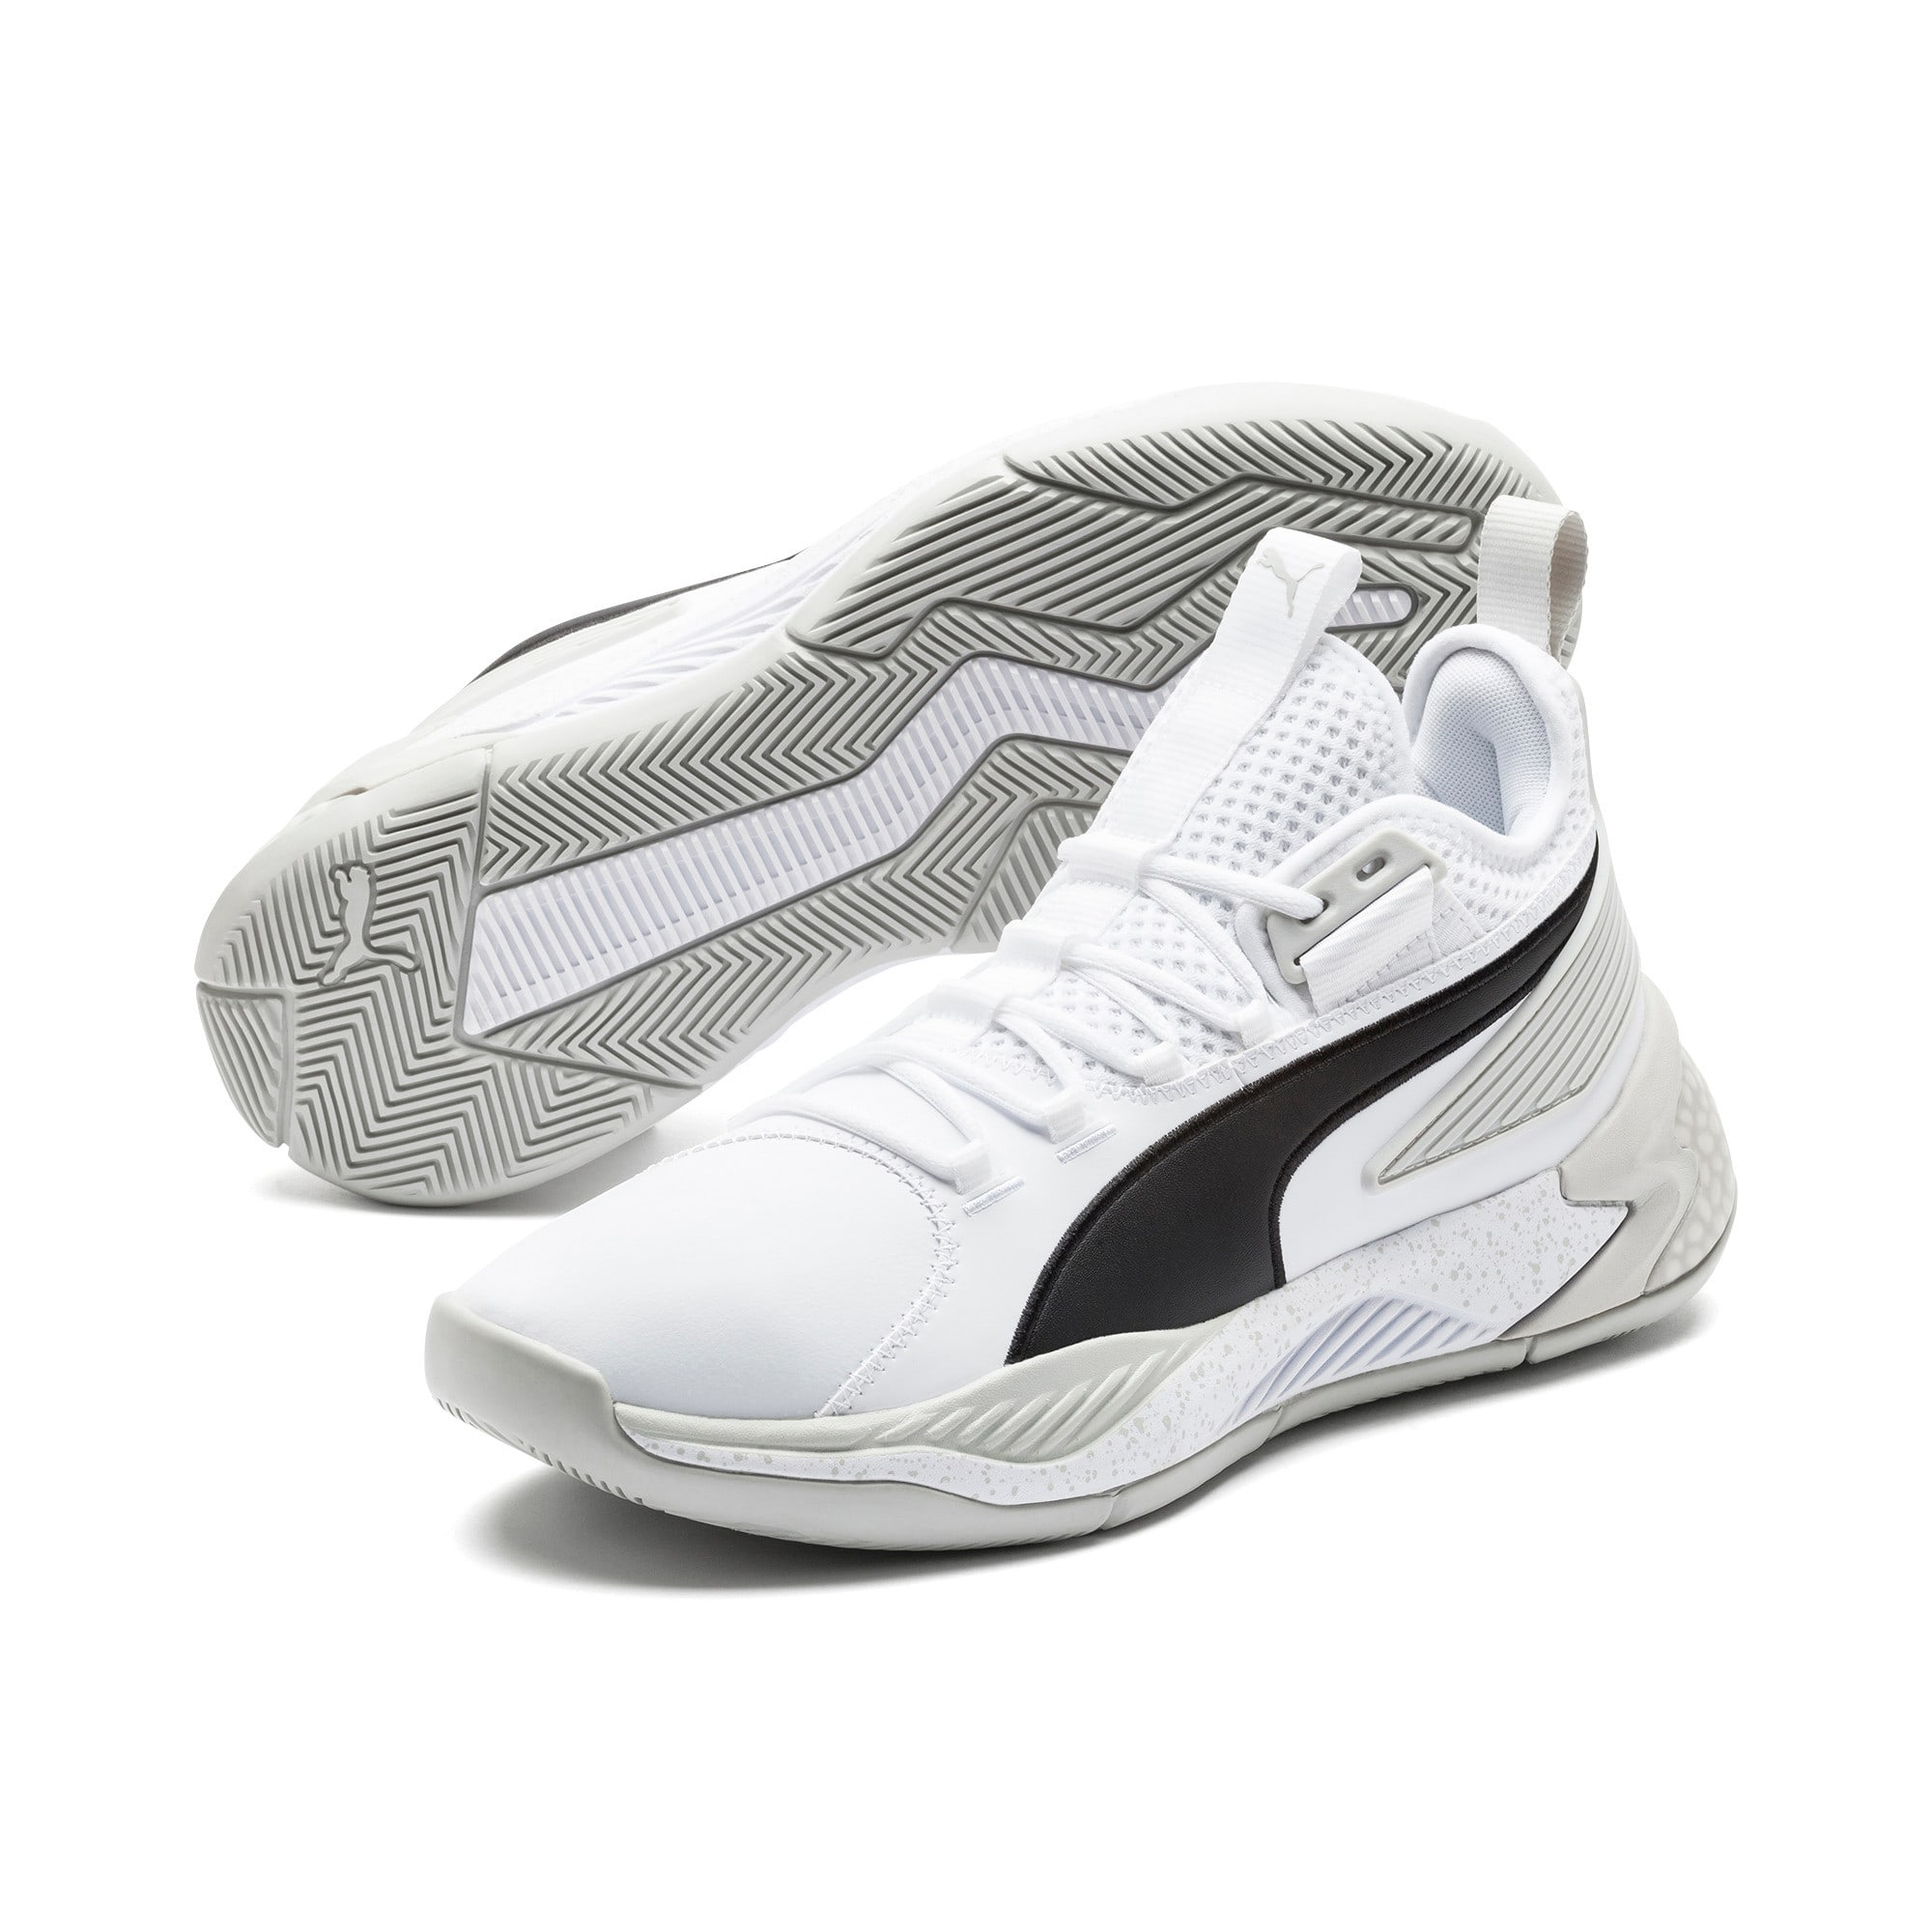 Thumbnail 2 of Uproar Core Basketball Shoes, Puma White-Glacier Gray, medium